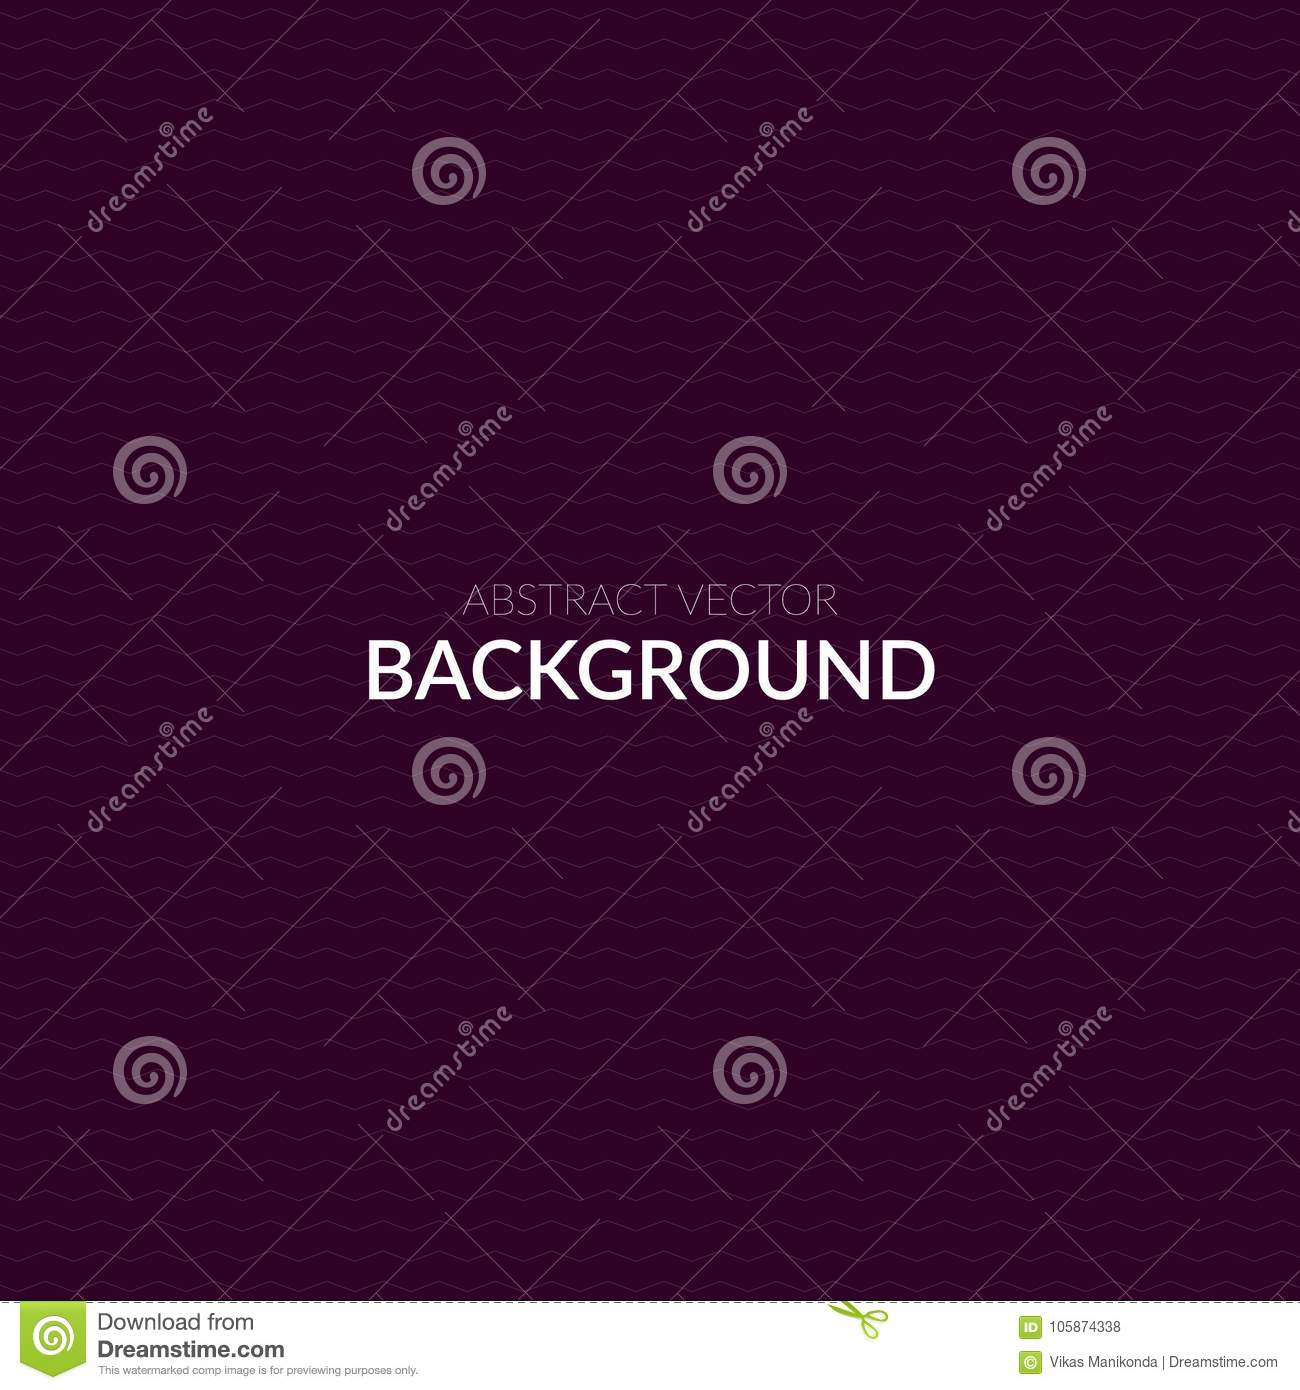 Abstract Vector Lines Wavy Poster Background Design Banner Template